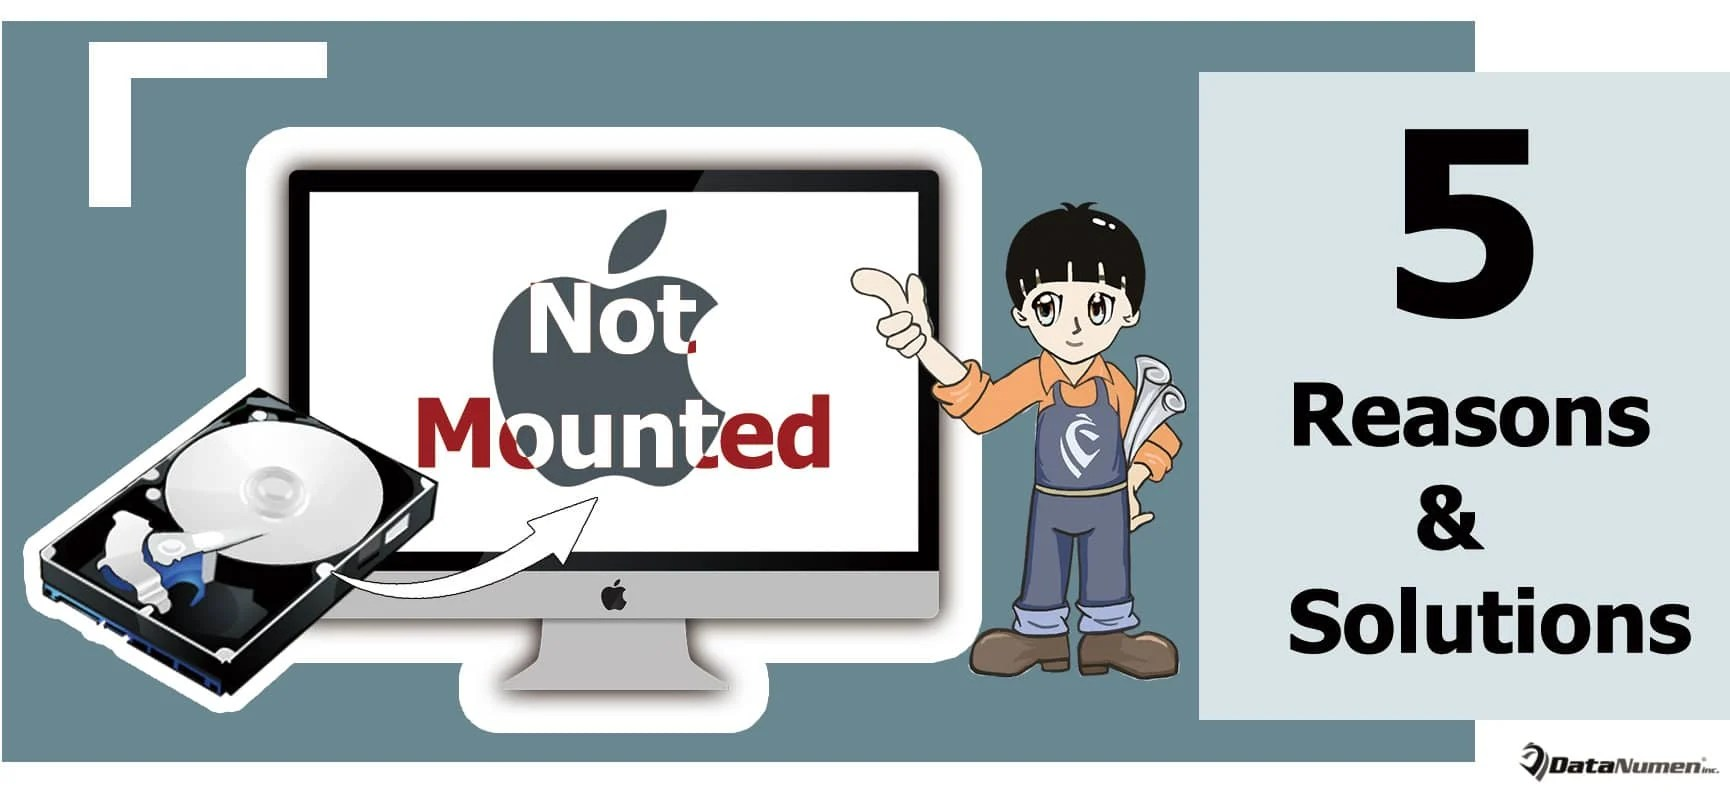 5 Top Reasons & Solutions when Mac Fails to Mount a Hard Drive